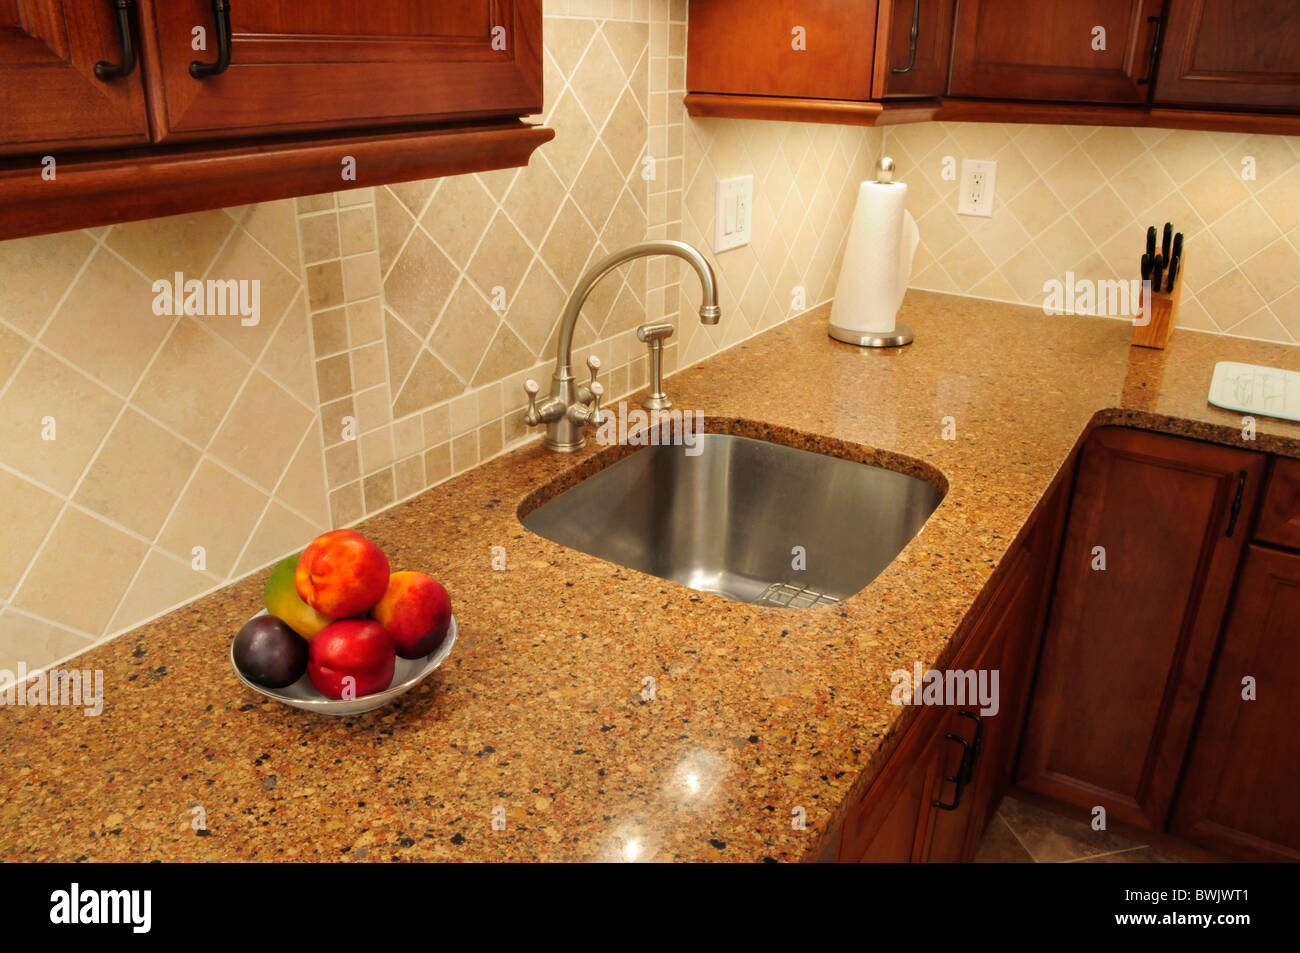 Stainless steel sink in a remodeled kitchen with a quartz counter - Stock Image